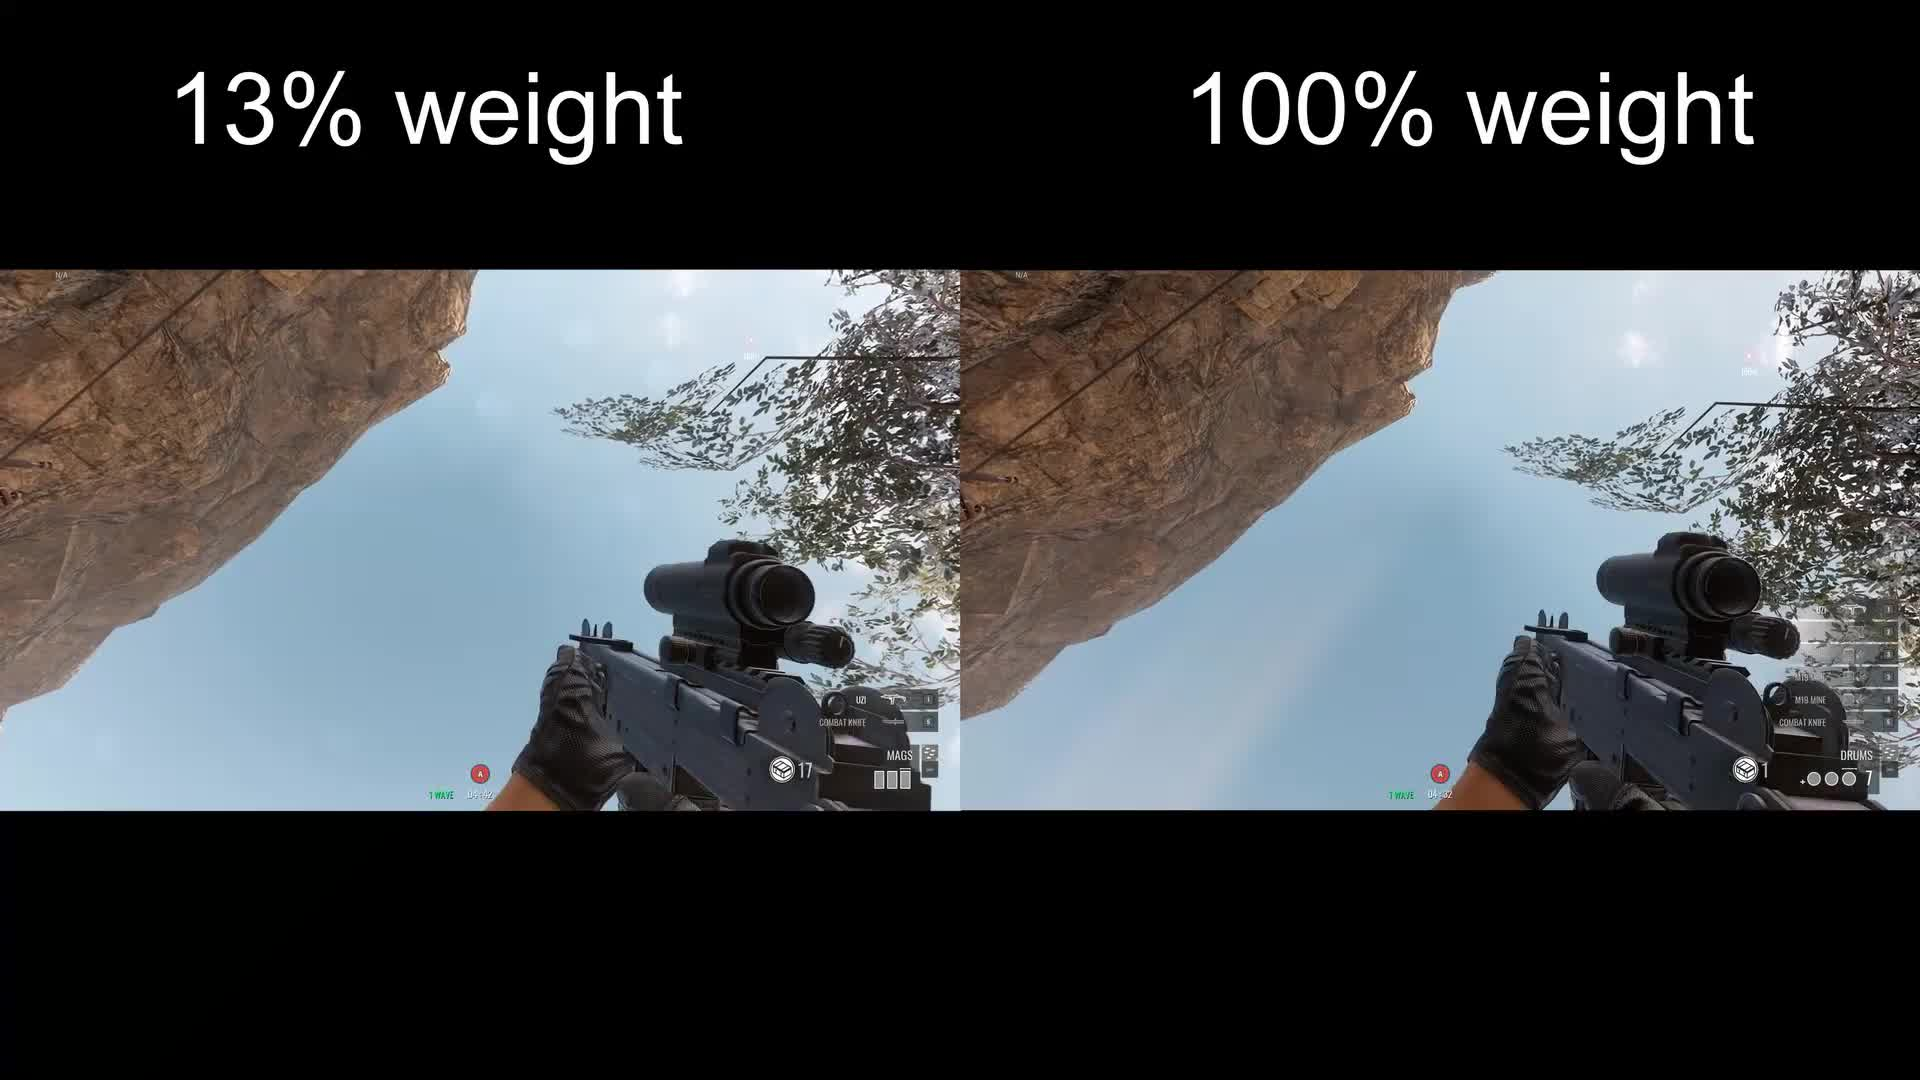 addfuture, gaming, Insurgency Sandstorm: Weight comparison GIFs